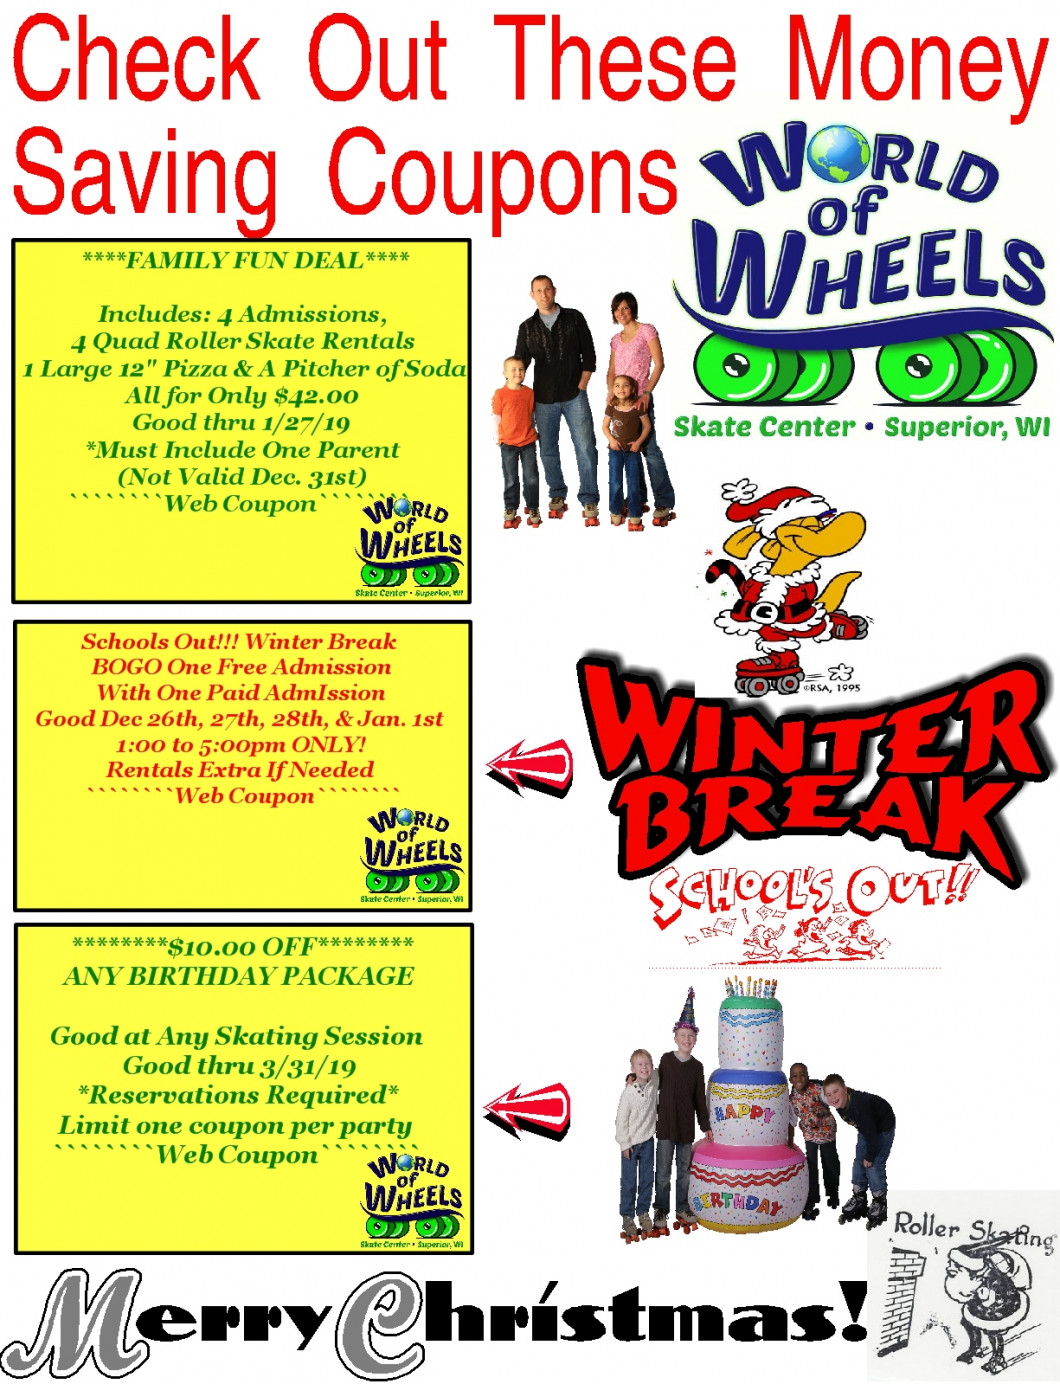 coupons world of wheels